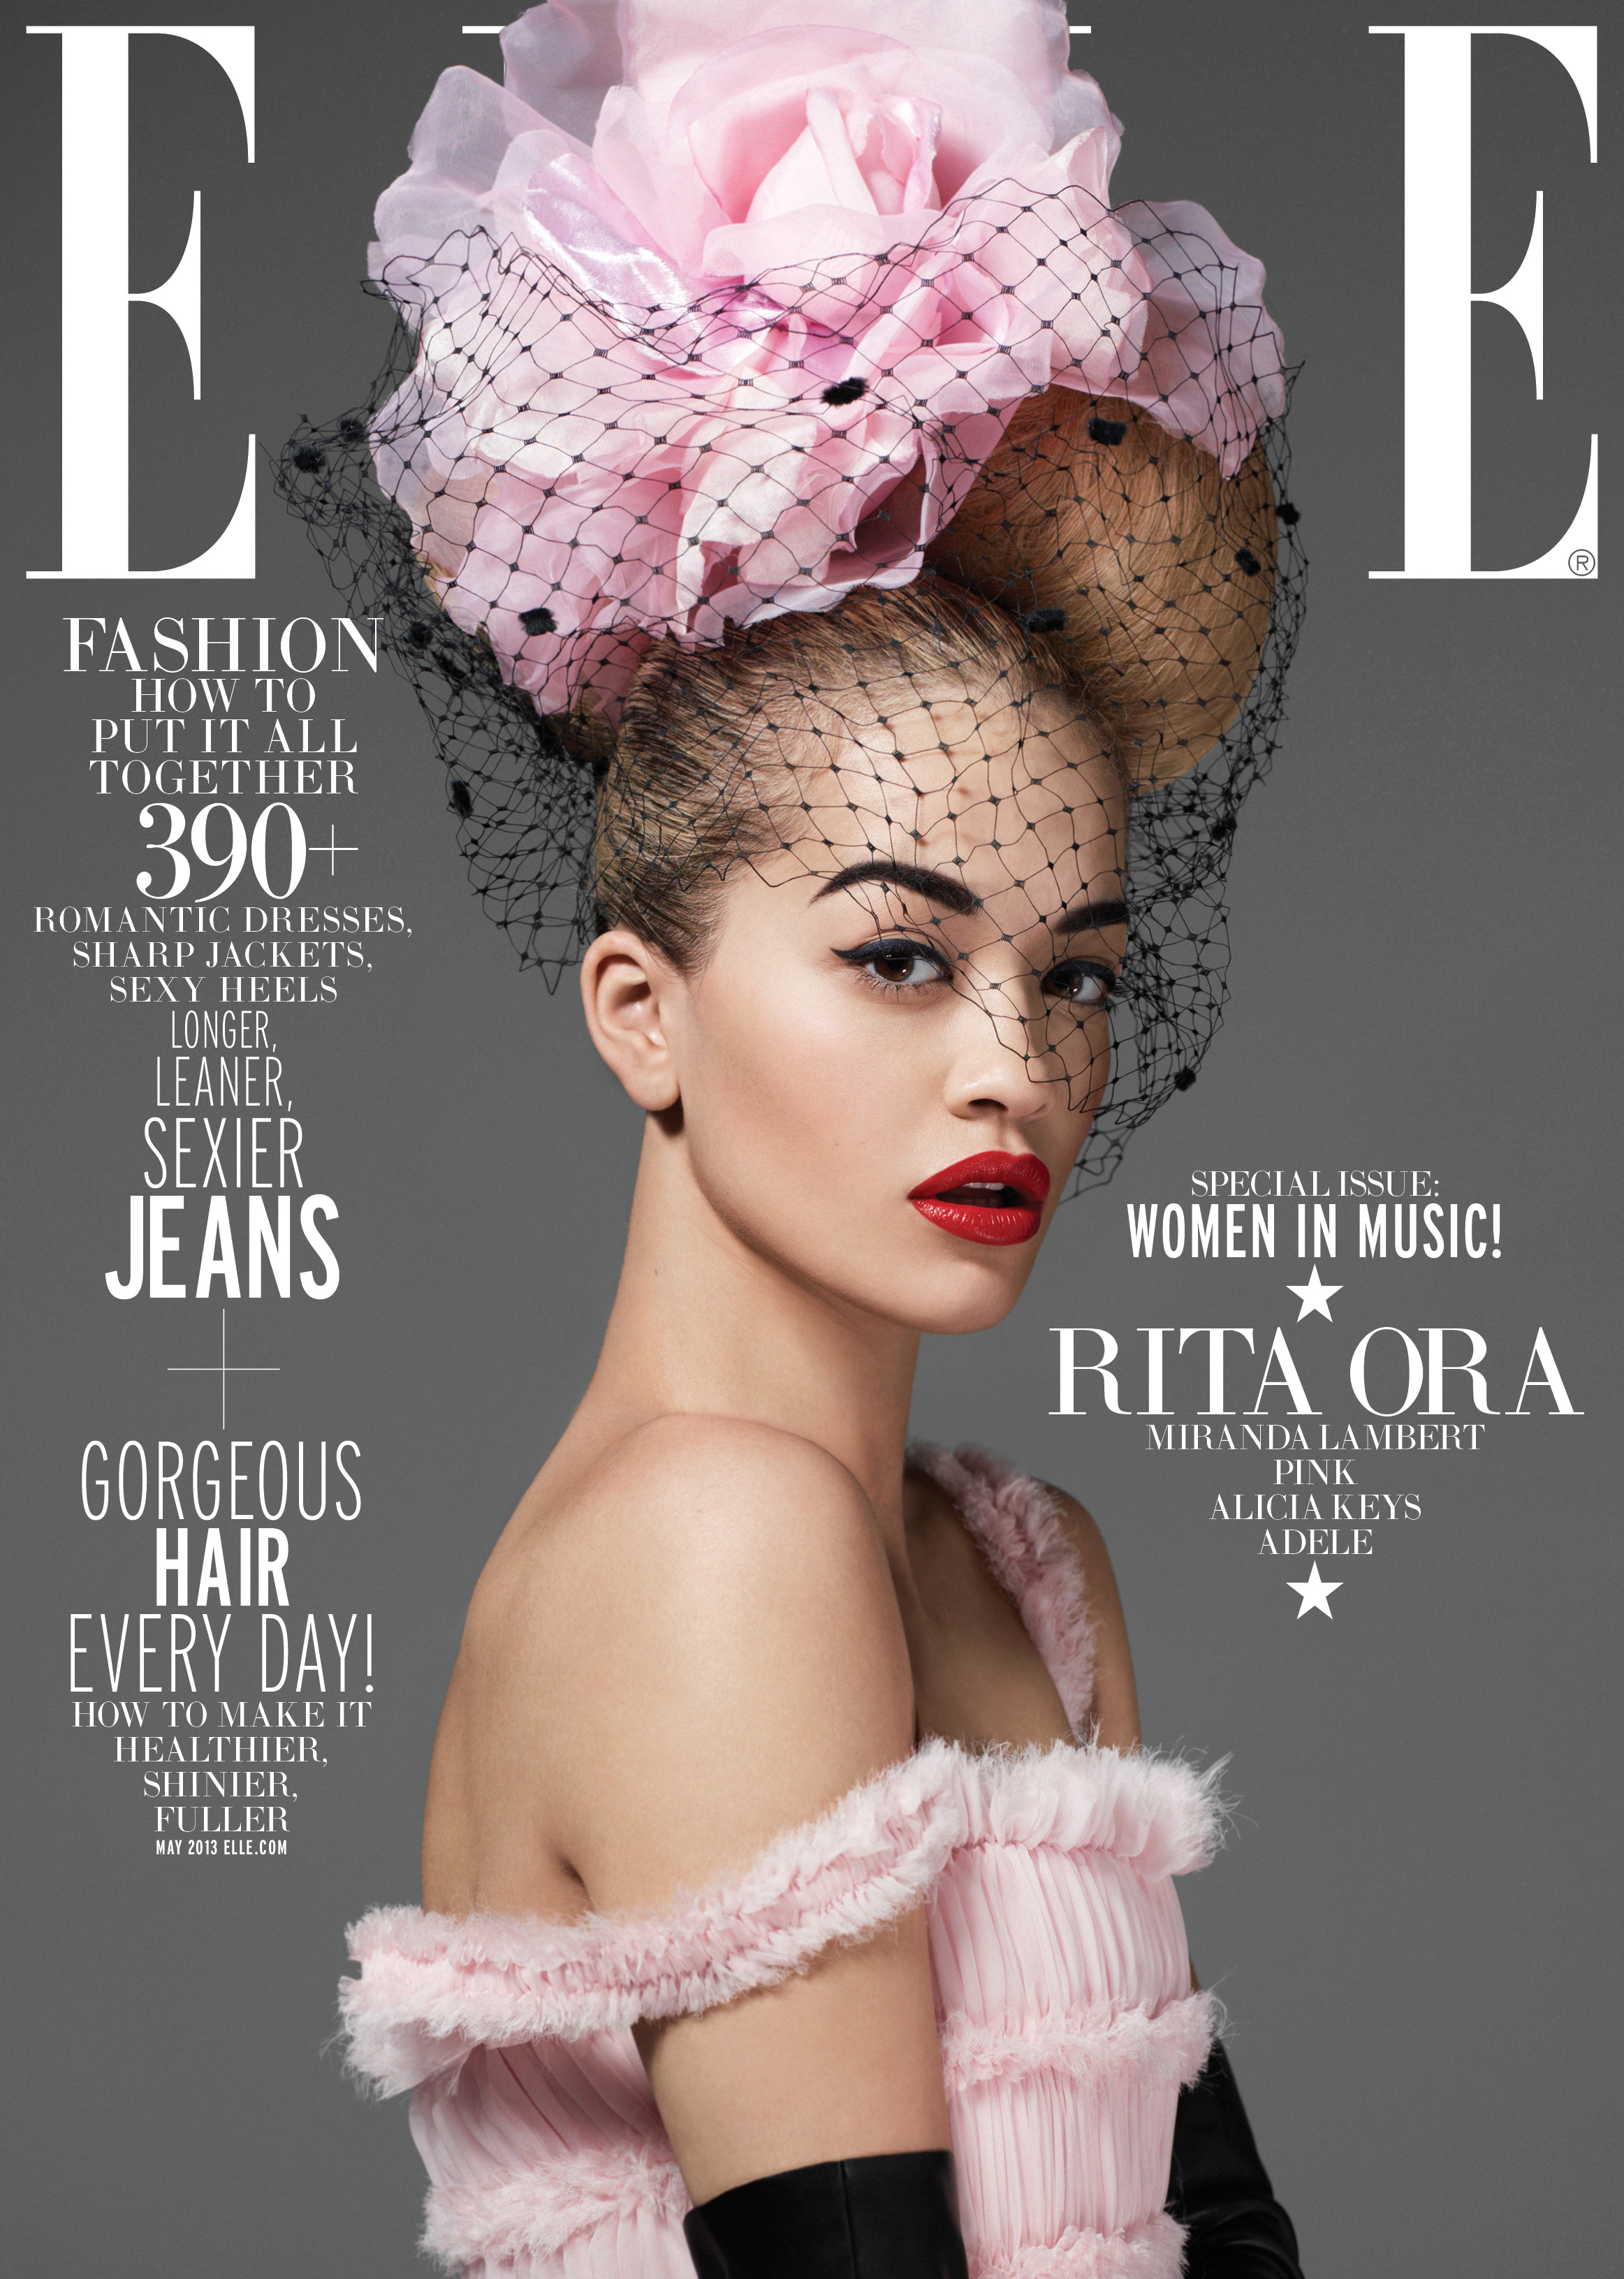 Fug or Fab the Covers: Rita Ora on Elle